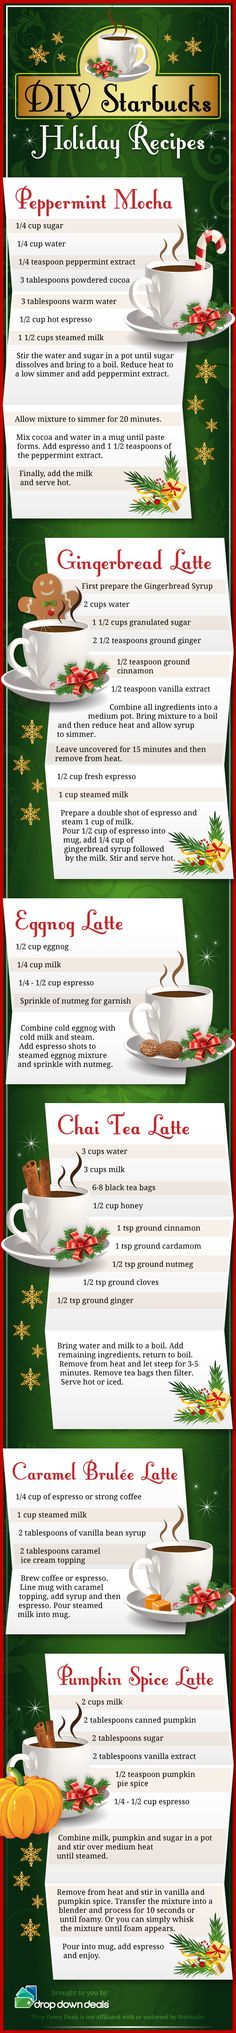 DIY Starbucks Holiday Drink Recipes!